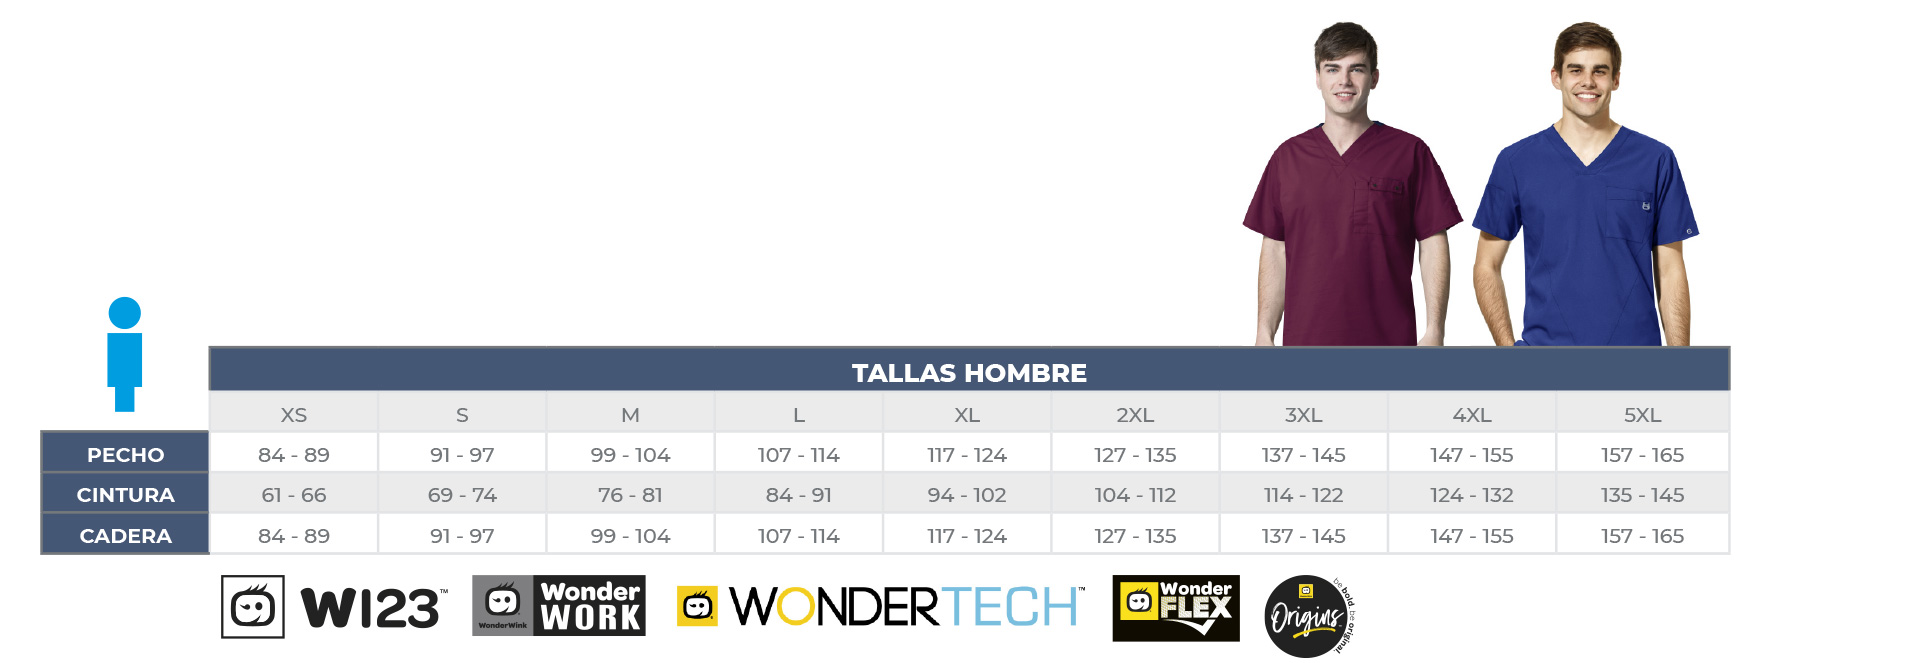 Tabla de tallas uniformes (10)